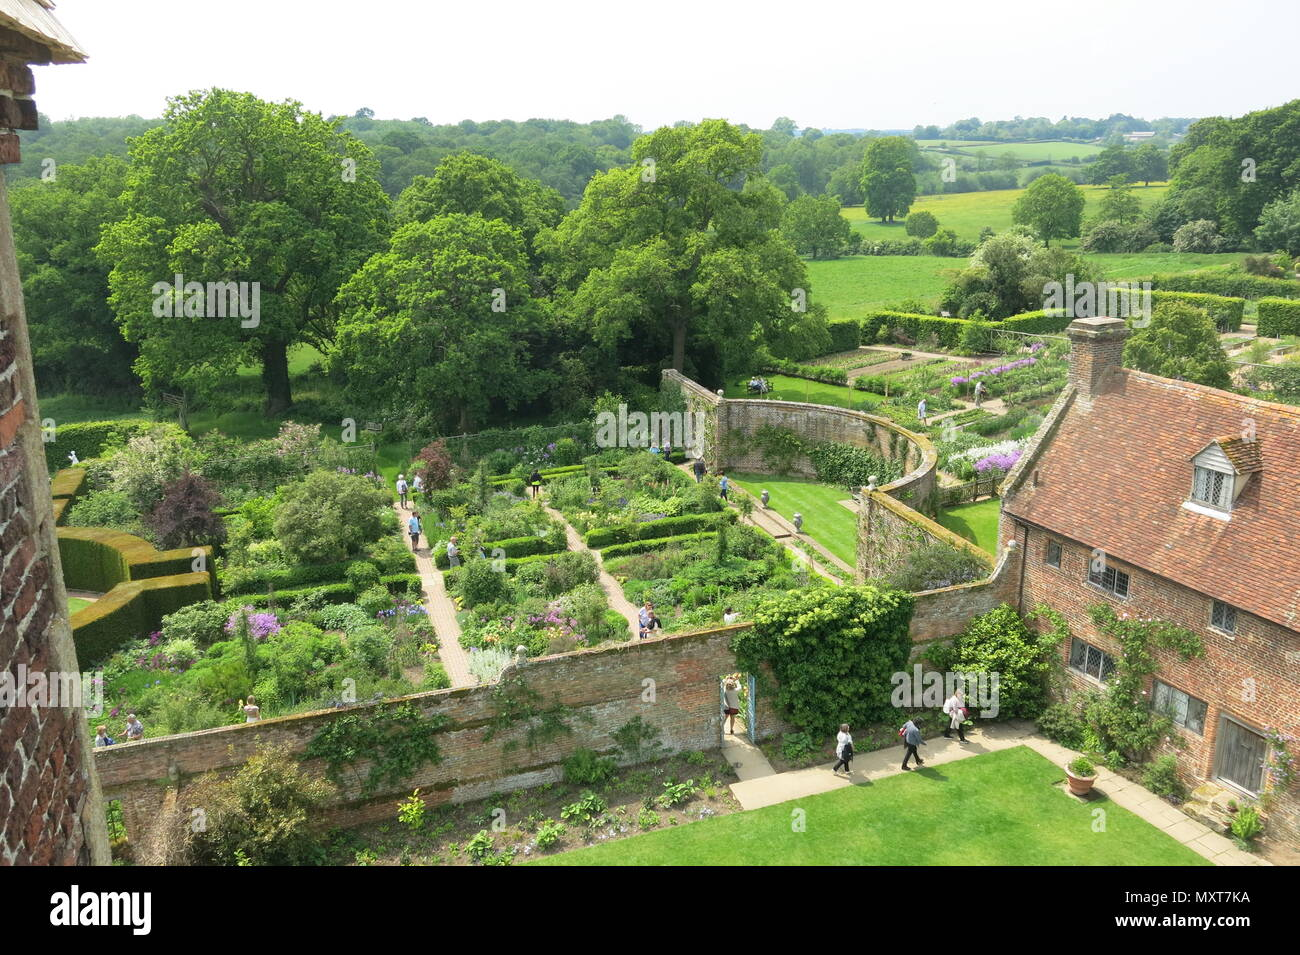 A view from the top of the tower at Sissinghurst Castle Garden, the National Trust property that was the home of Vita Sackville-West and her husband - Stock Image